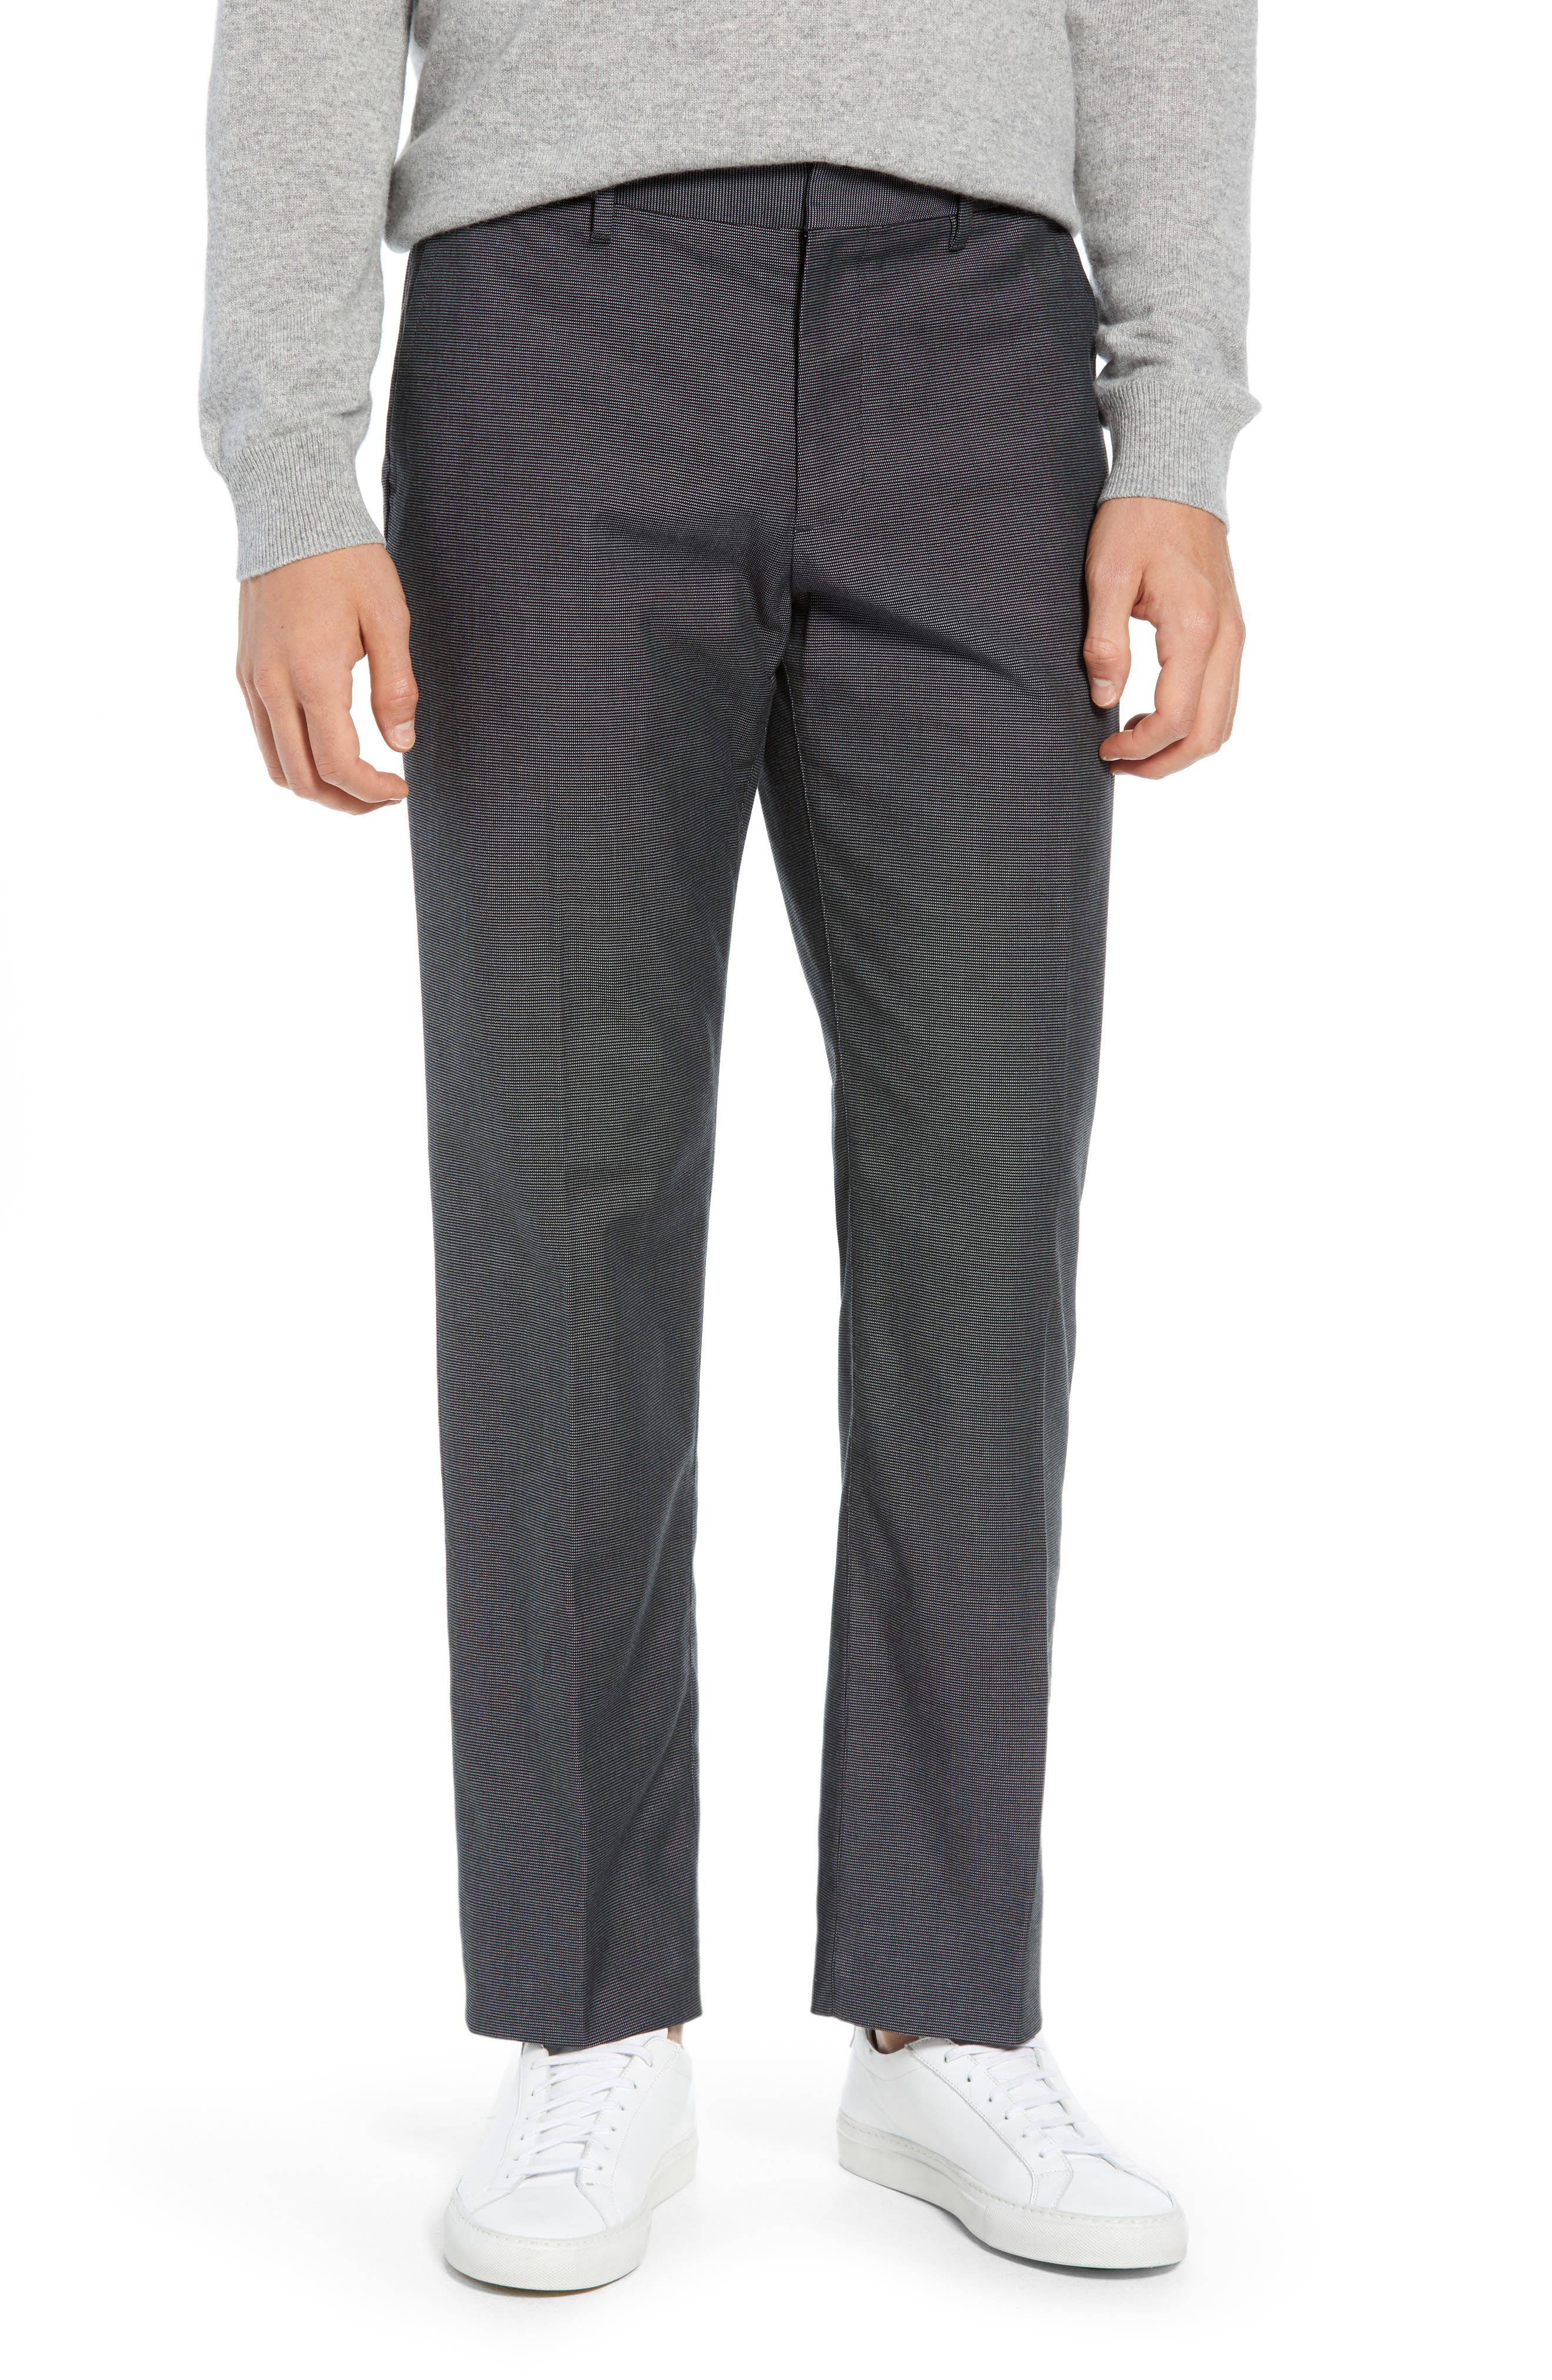 Weekday Warrior Straight Leg Stretch Dress Pants,                             Main thumbnail 1, color,                             TUESDAY CHARCOAL